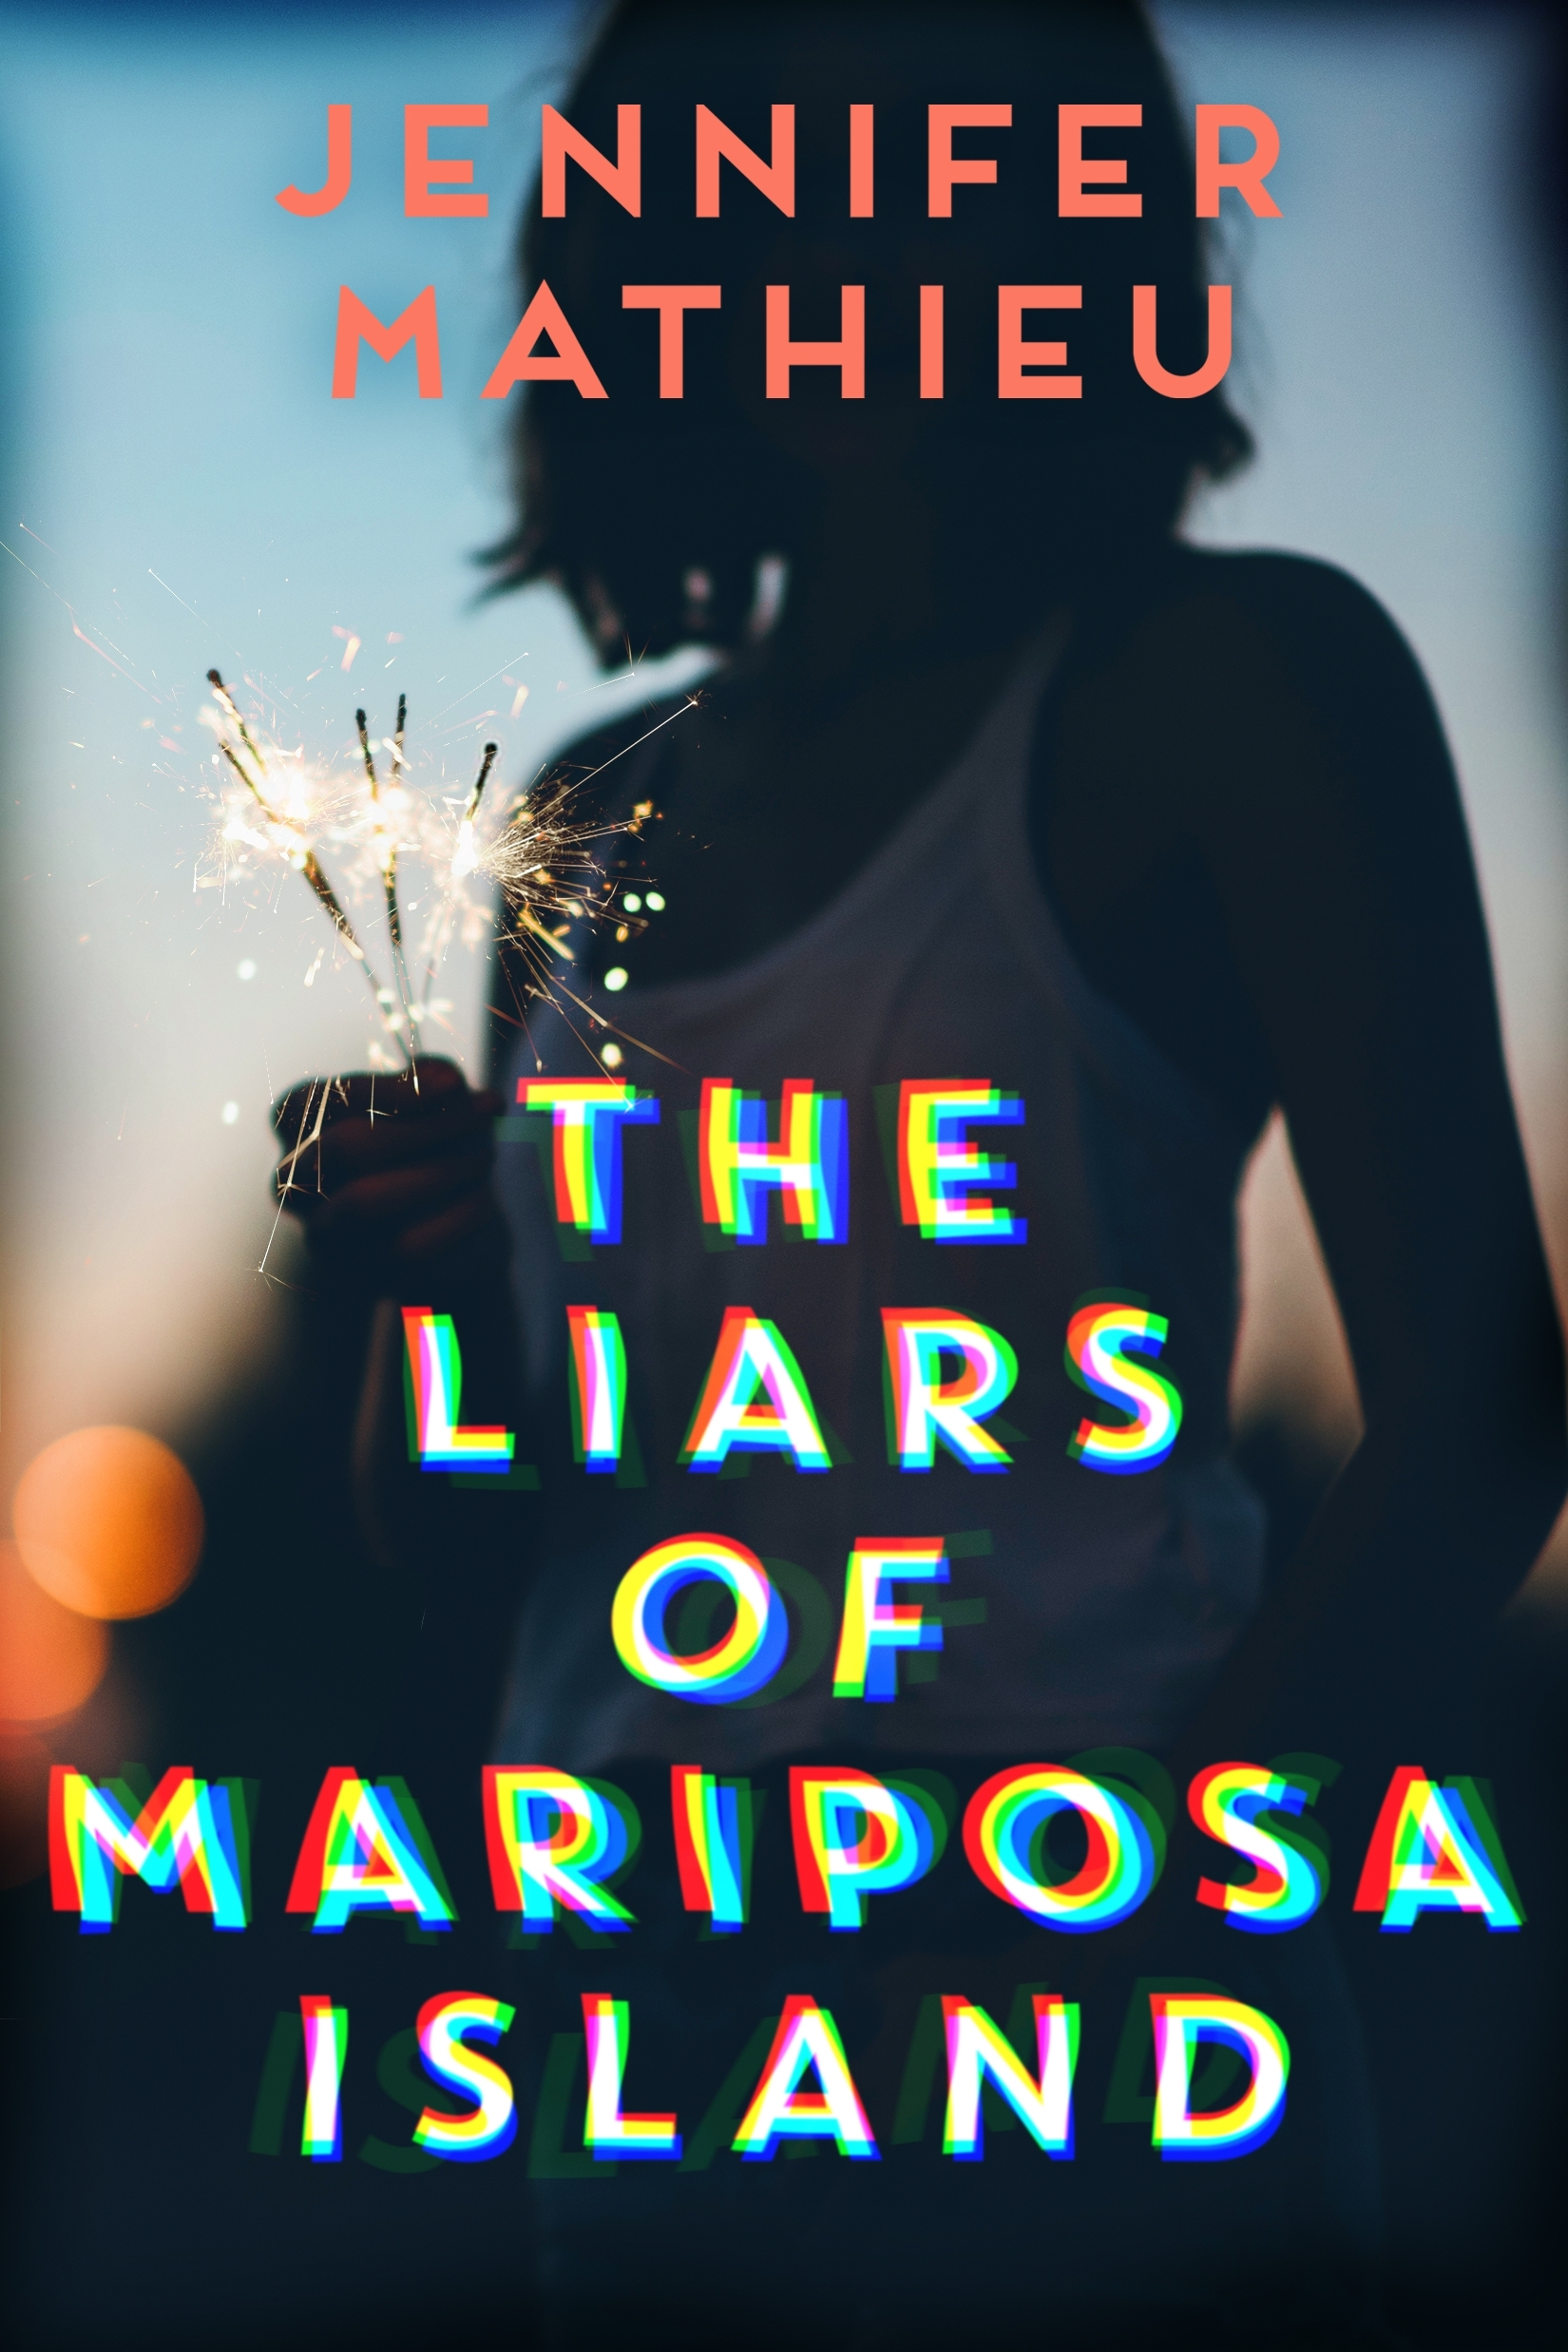 The liars of Mariposa Island cover image